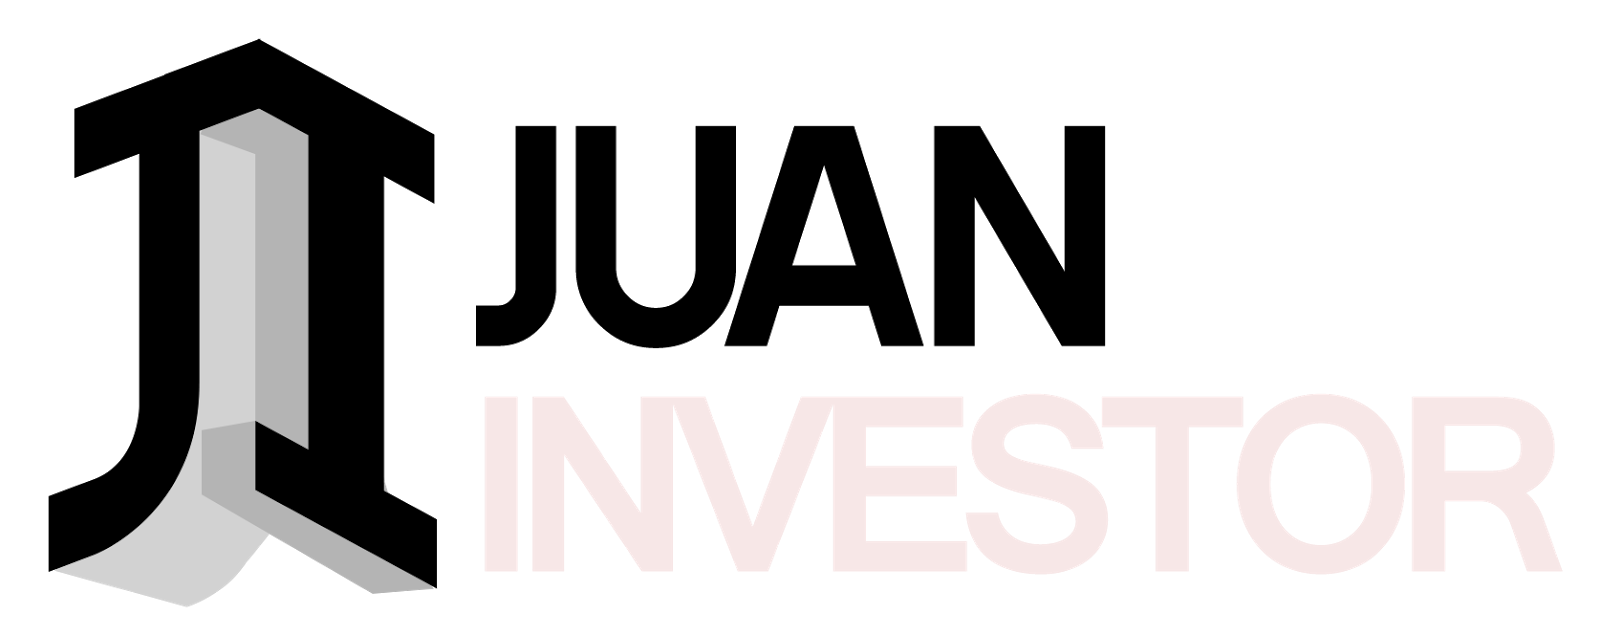 JuanInvestor - Personal Finance and Investing Blog